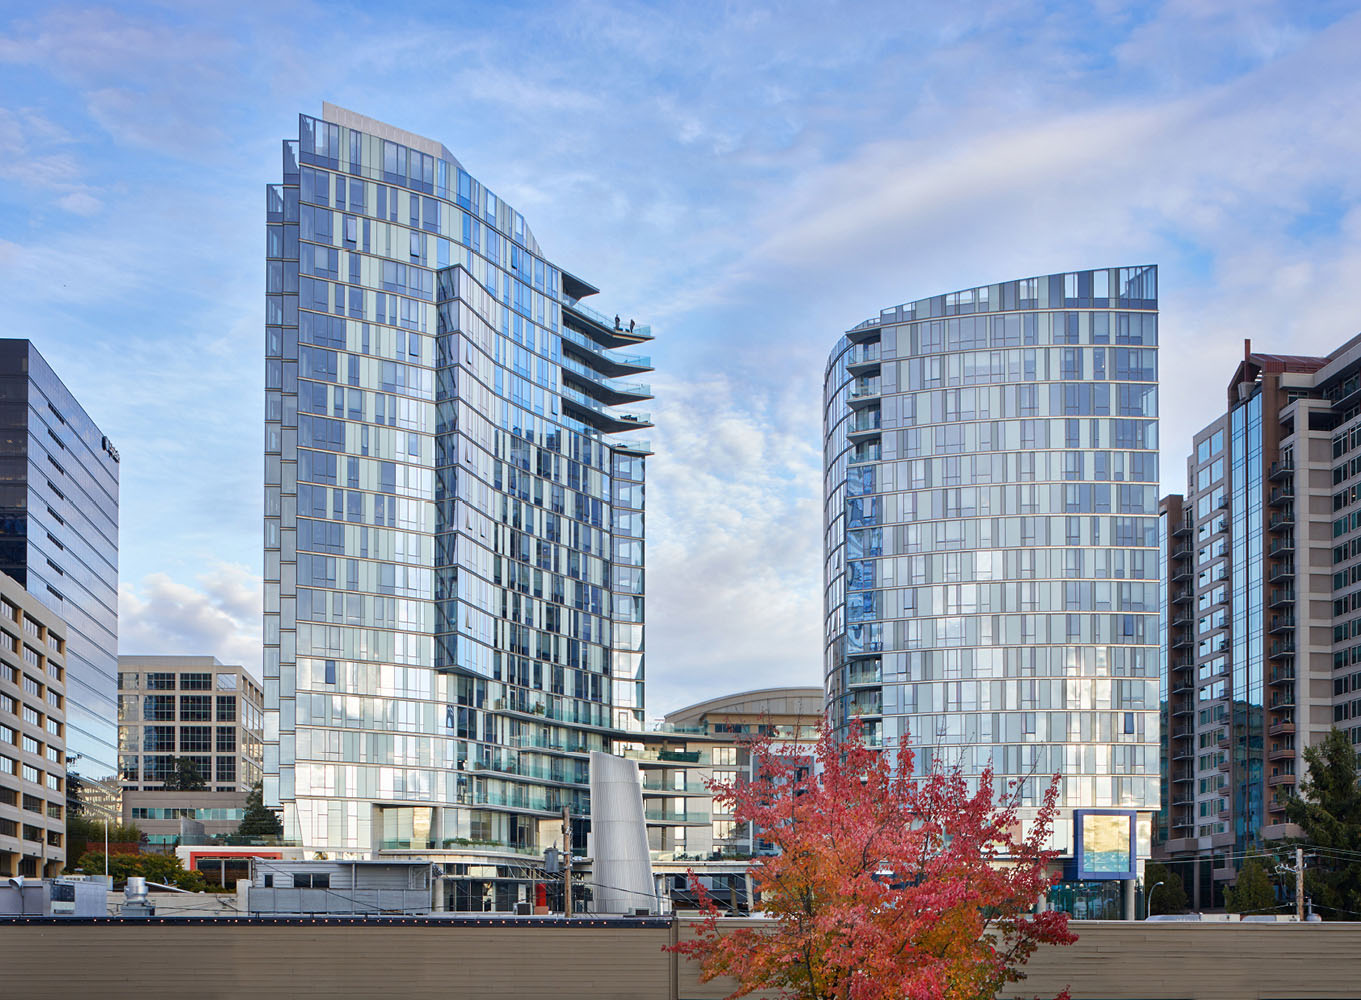 SOMA Towers establishes a design benchmark at the south edge of downtown Bellevue, WA. Benjamin Benschneider